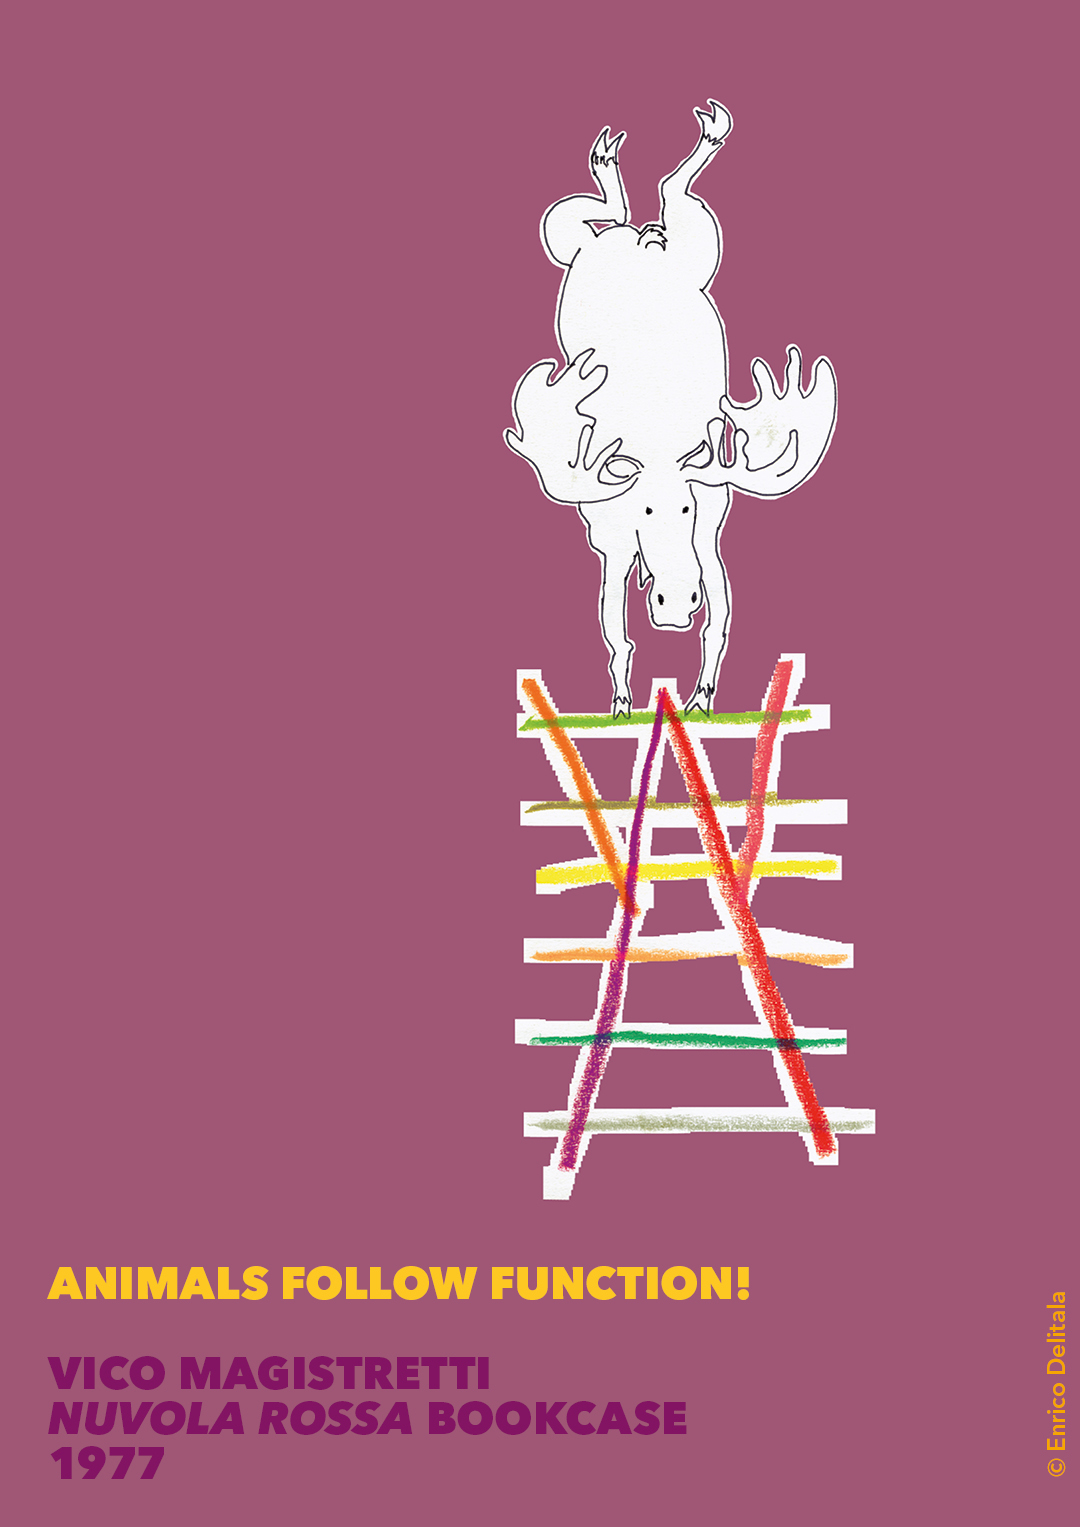 Alce: Enrico Delitala illustrator animals follow function form follows function Vico Magistretti Nuvola rossa